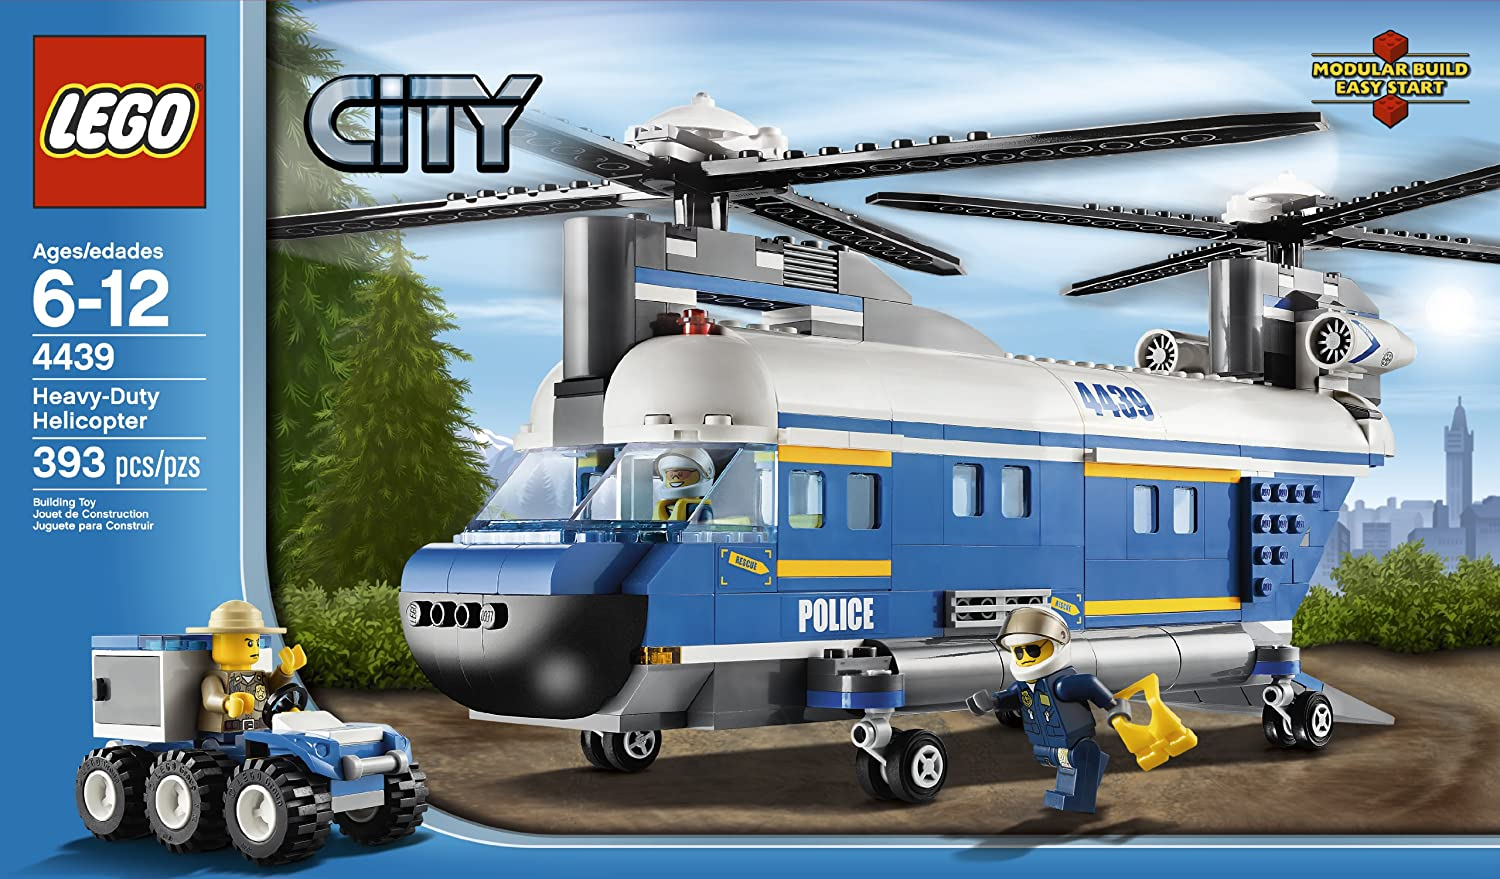 amazoncom lego city police heavy lift helicopter 4439 toys games